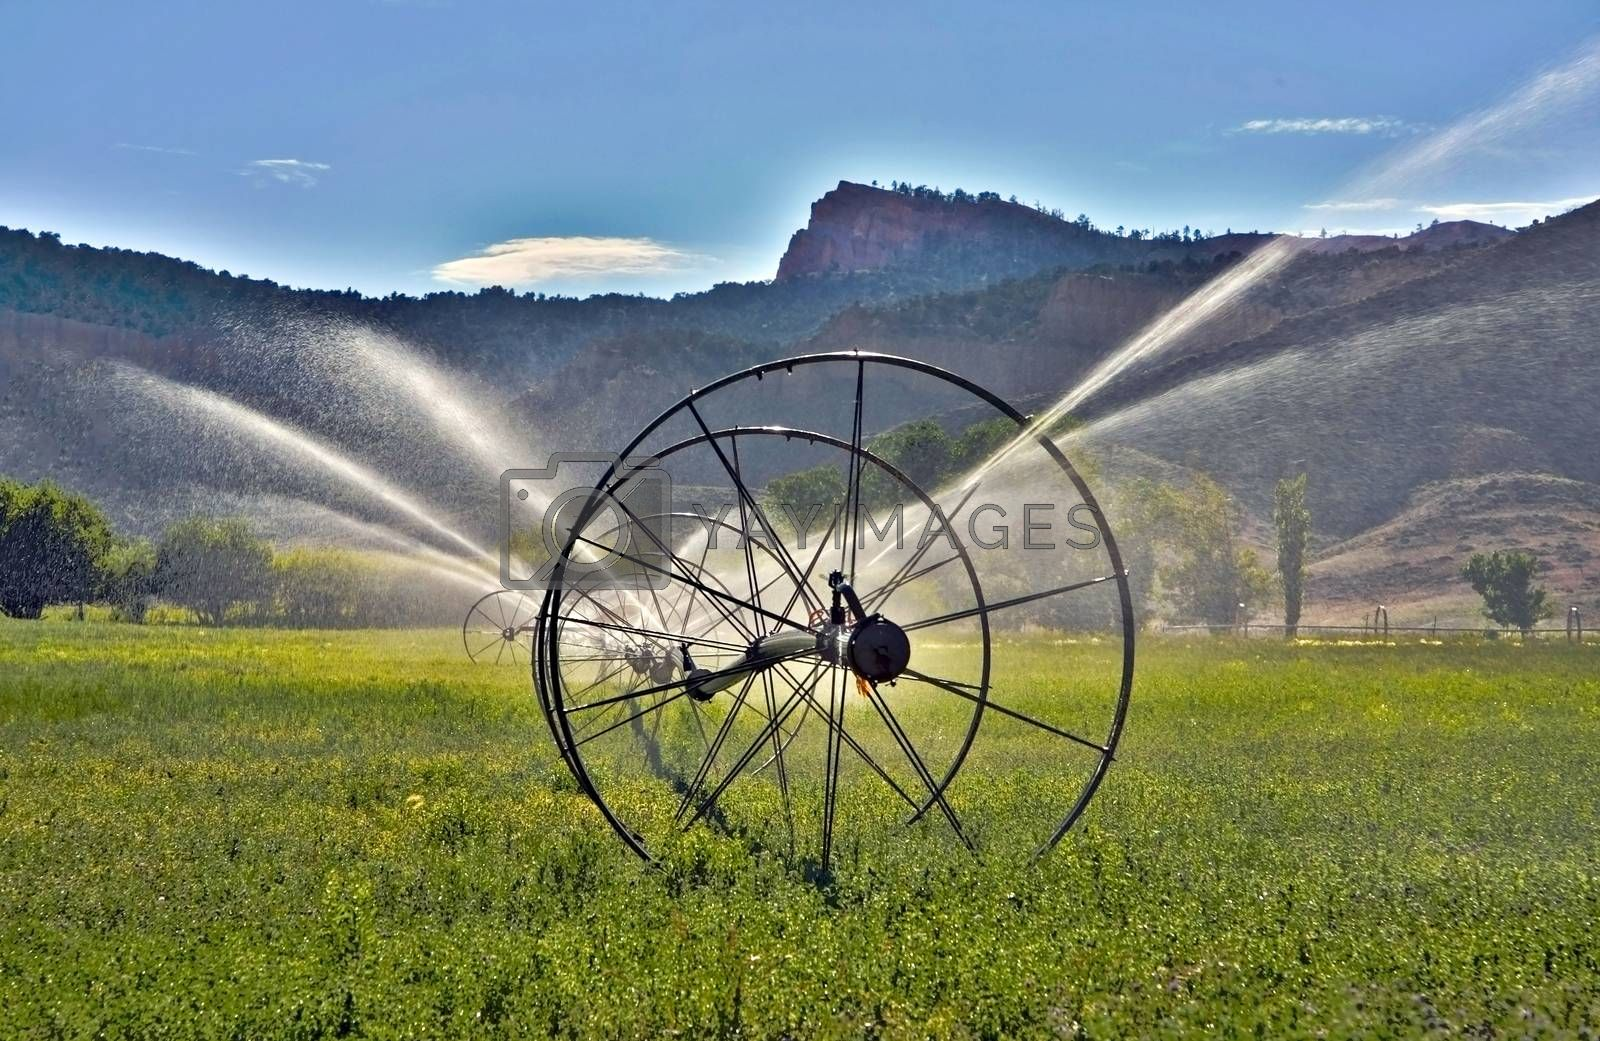 Irrigation System by applesstock